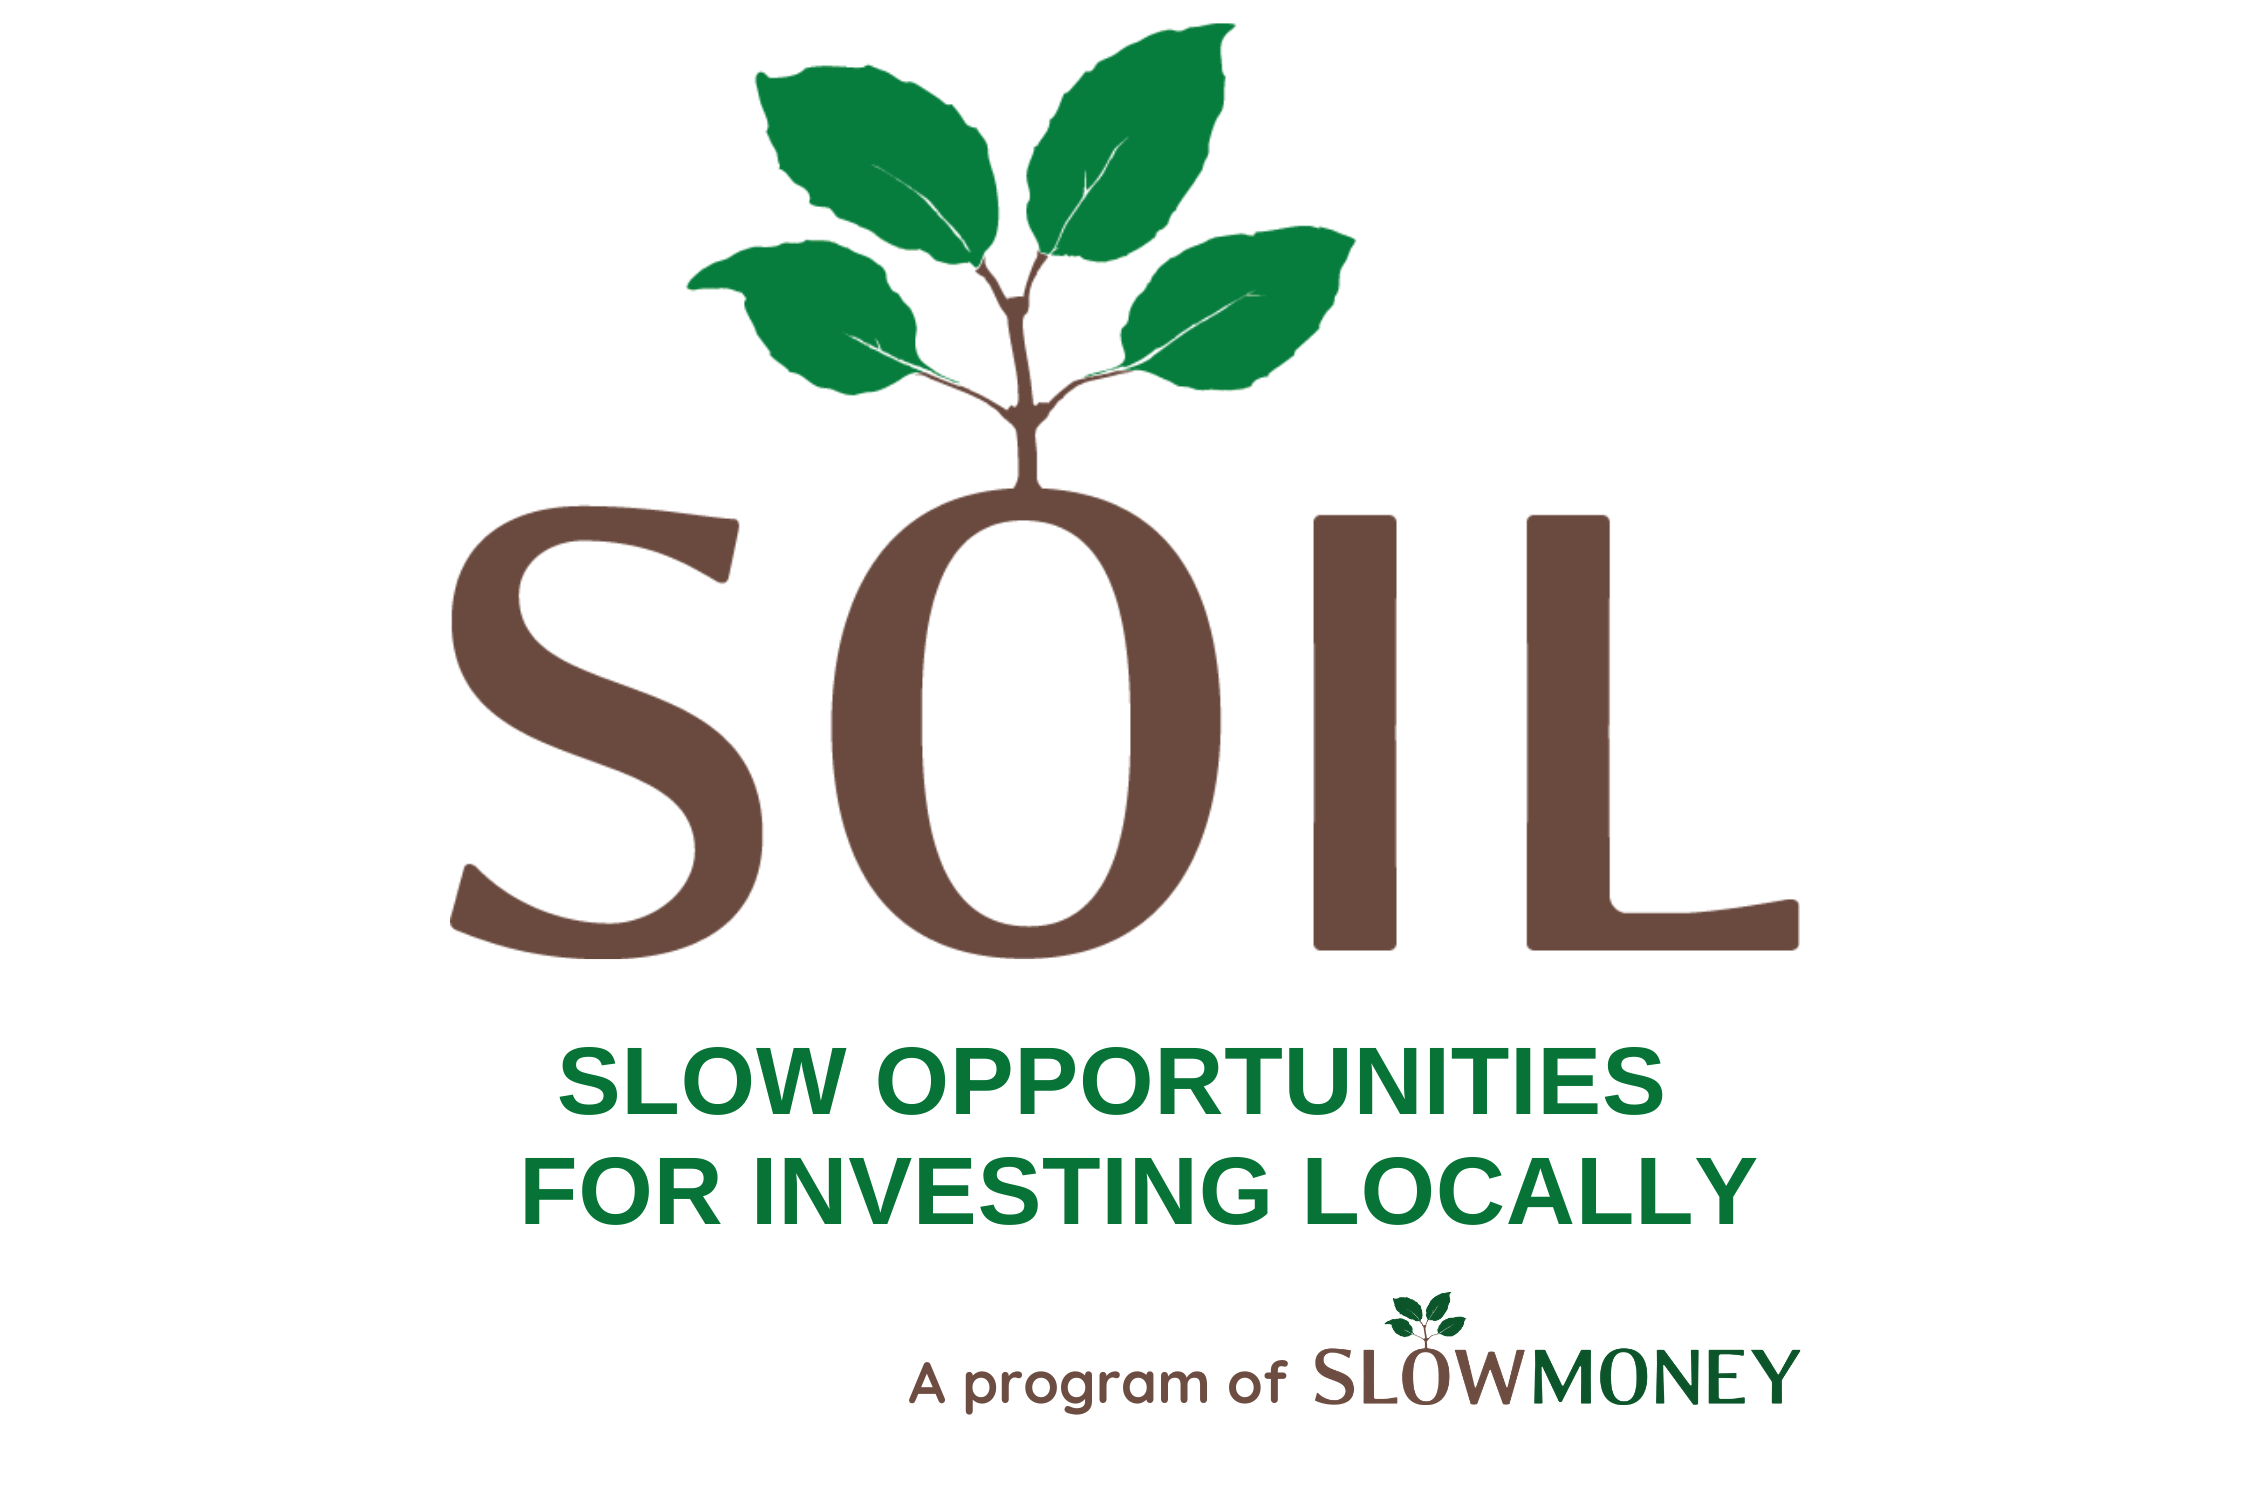 Slow Opportunities for Investing Locally (SOIL)